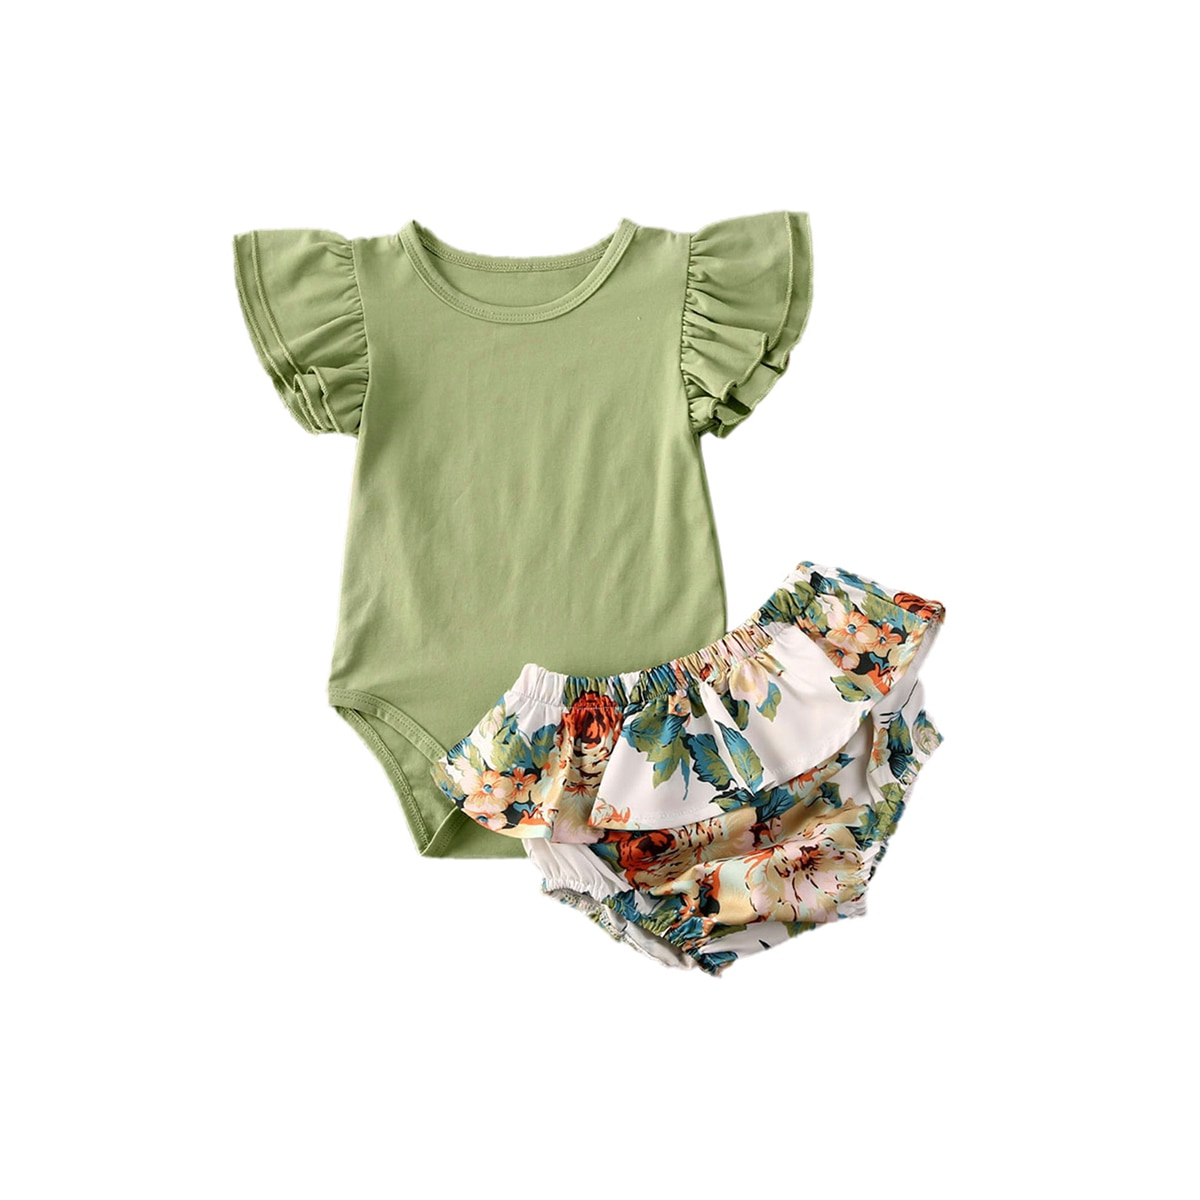 0-24M Newborn Baby Girl Tutu Skirts Clothes Toddler KIds Short Sleeve Romper Tops Floral Shorts Outfits